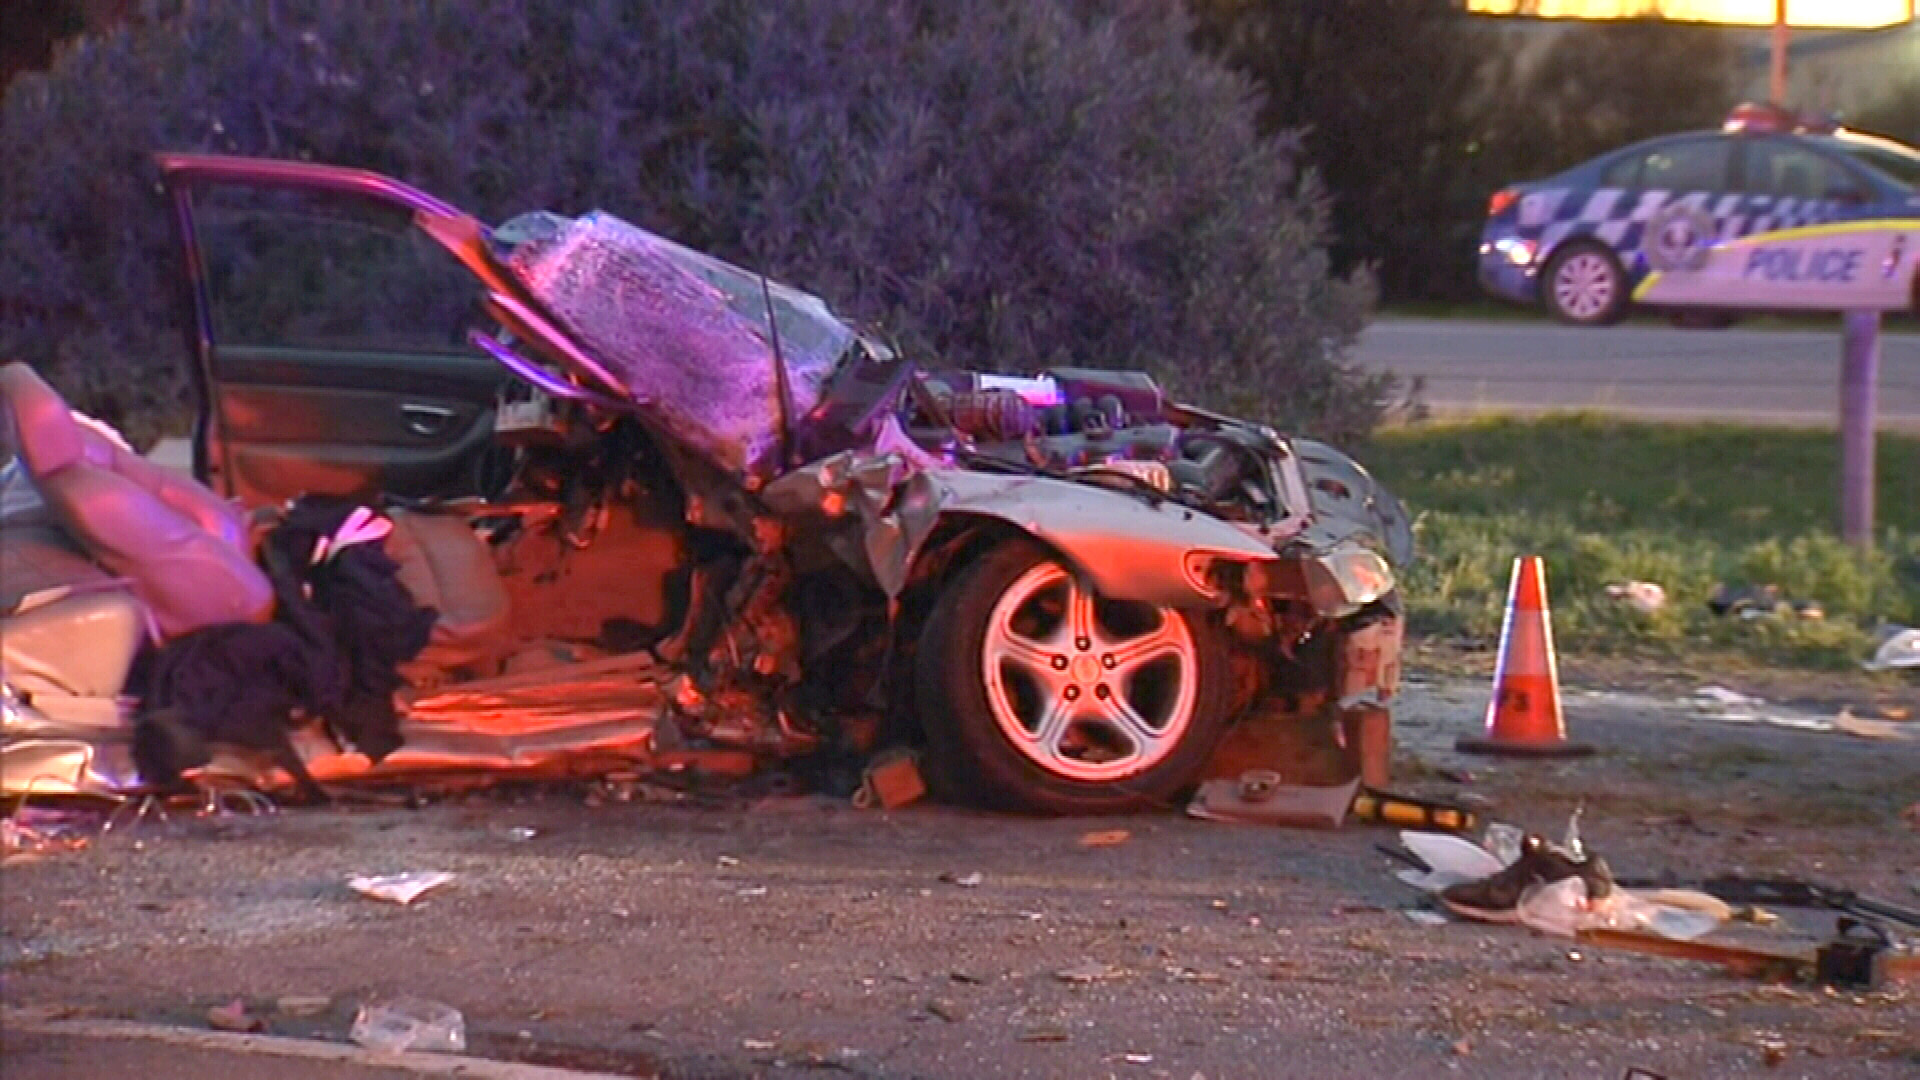 The death brings the state's road toll to 61, up 10 from the same time last year. (9NEWS)